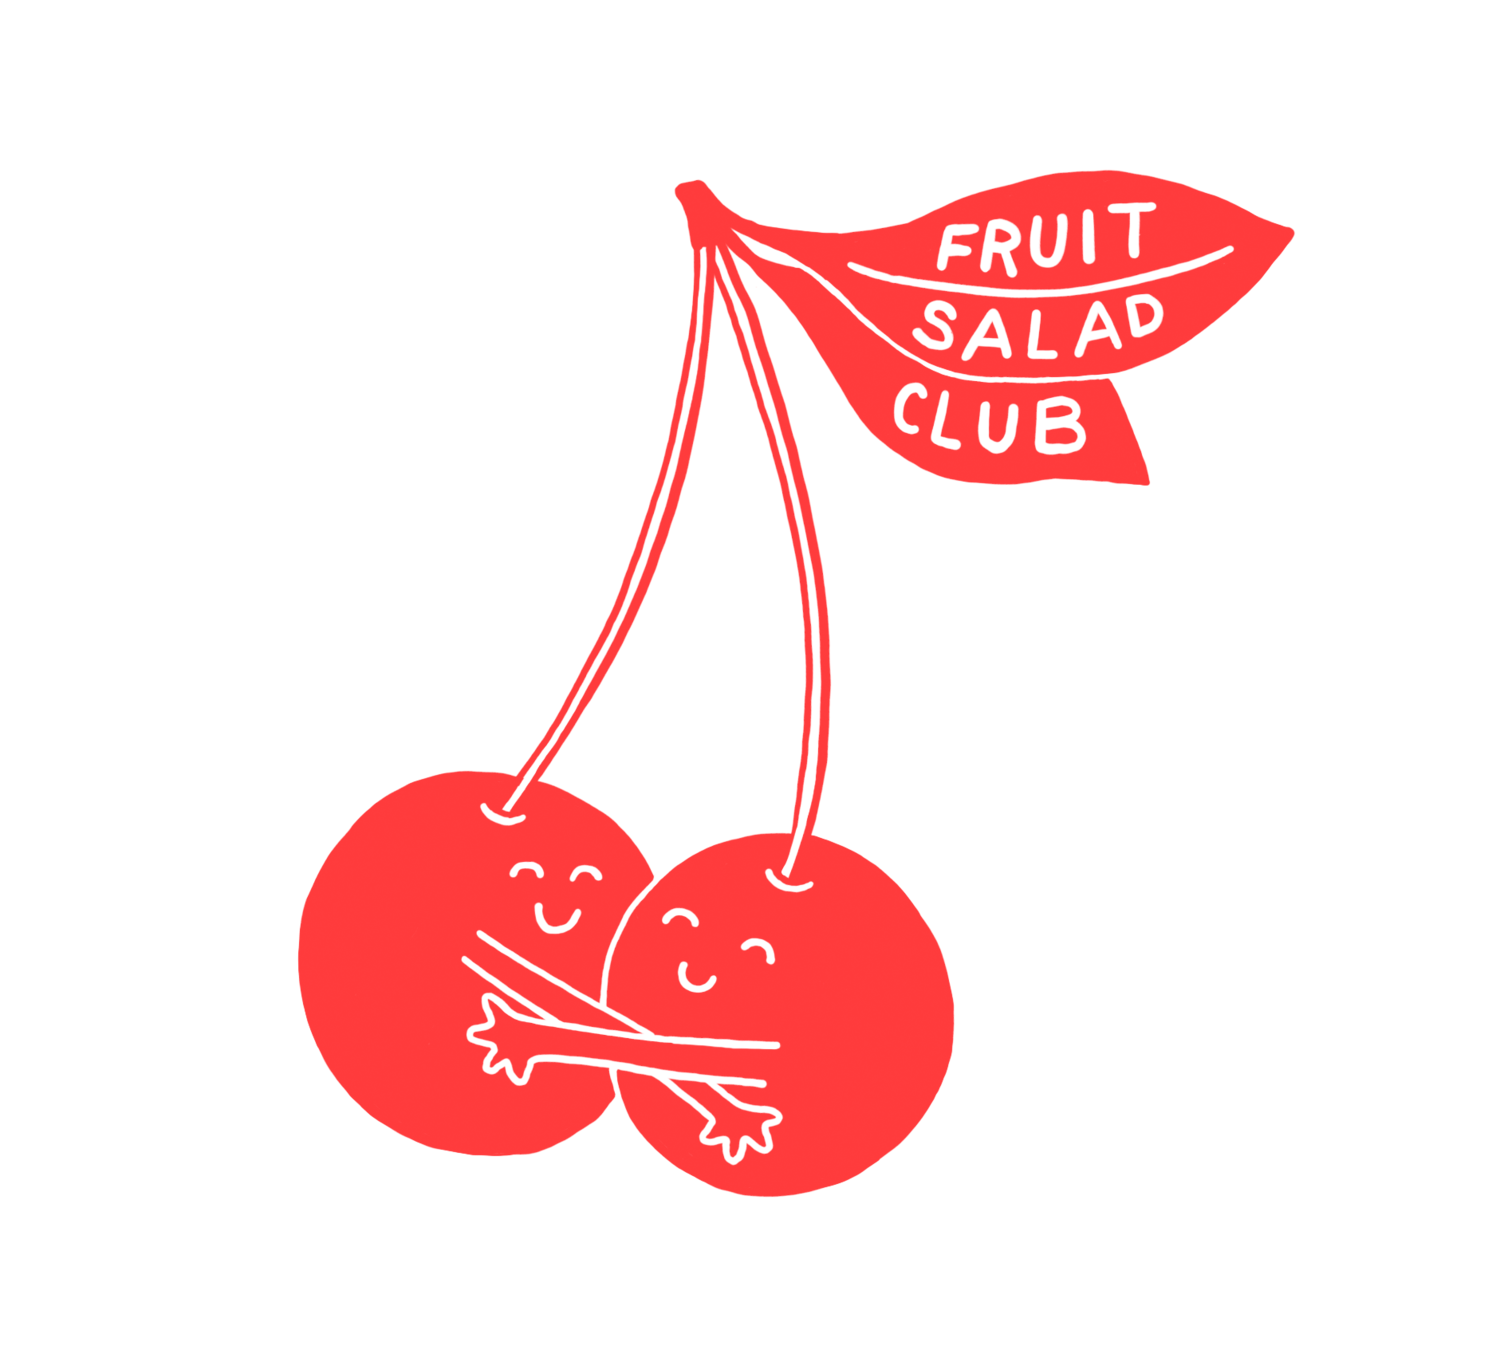 Fruit Salad Club